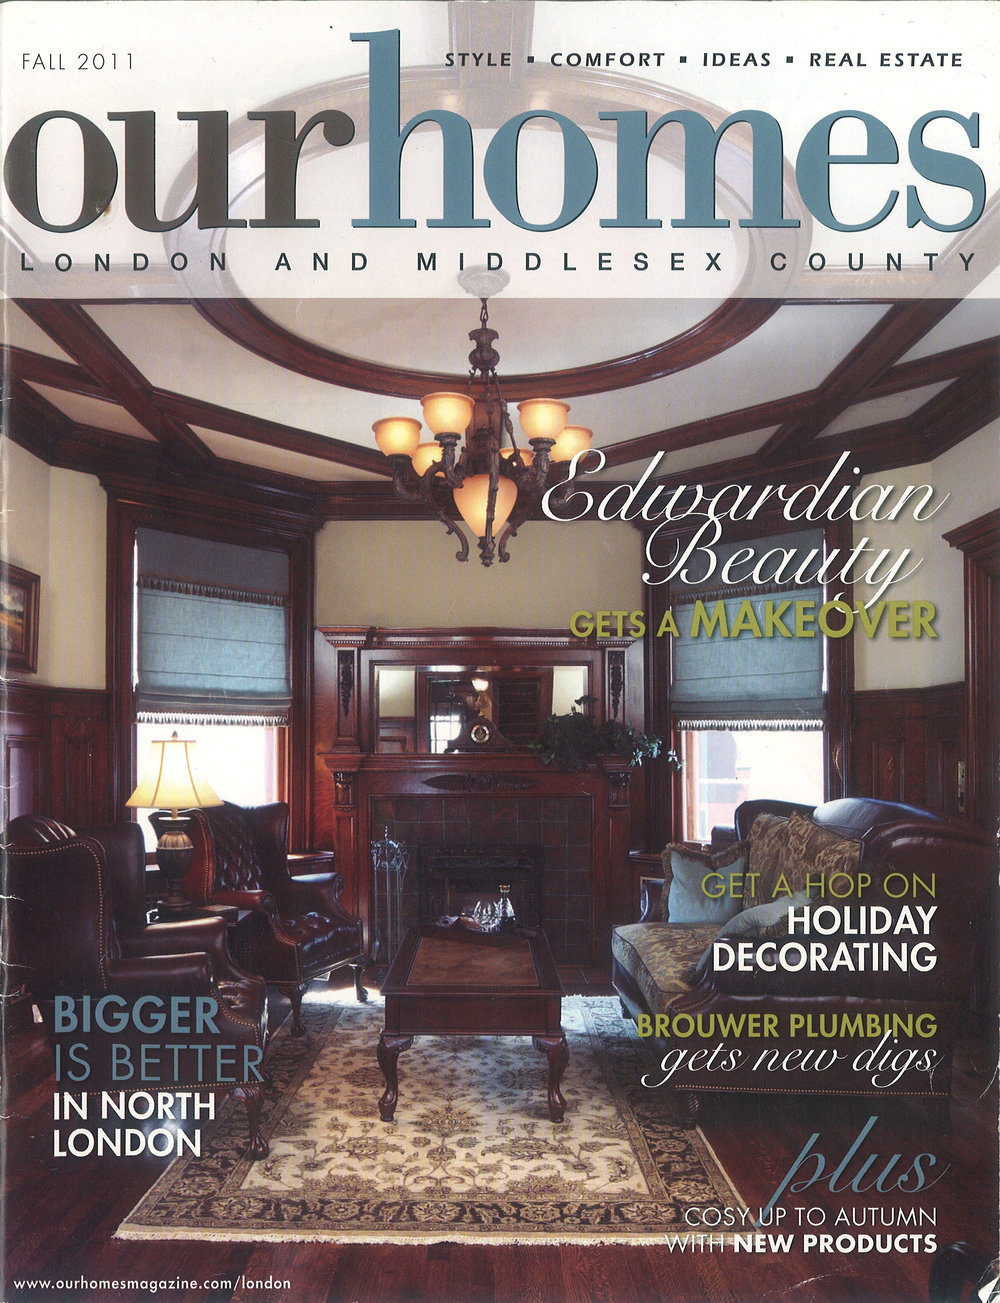 Our Homes Magazine  - London, ON 2011